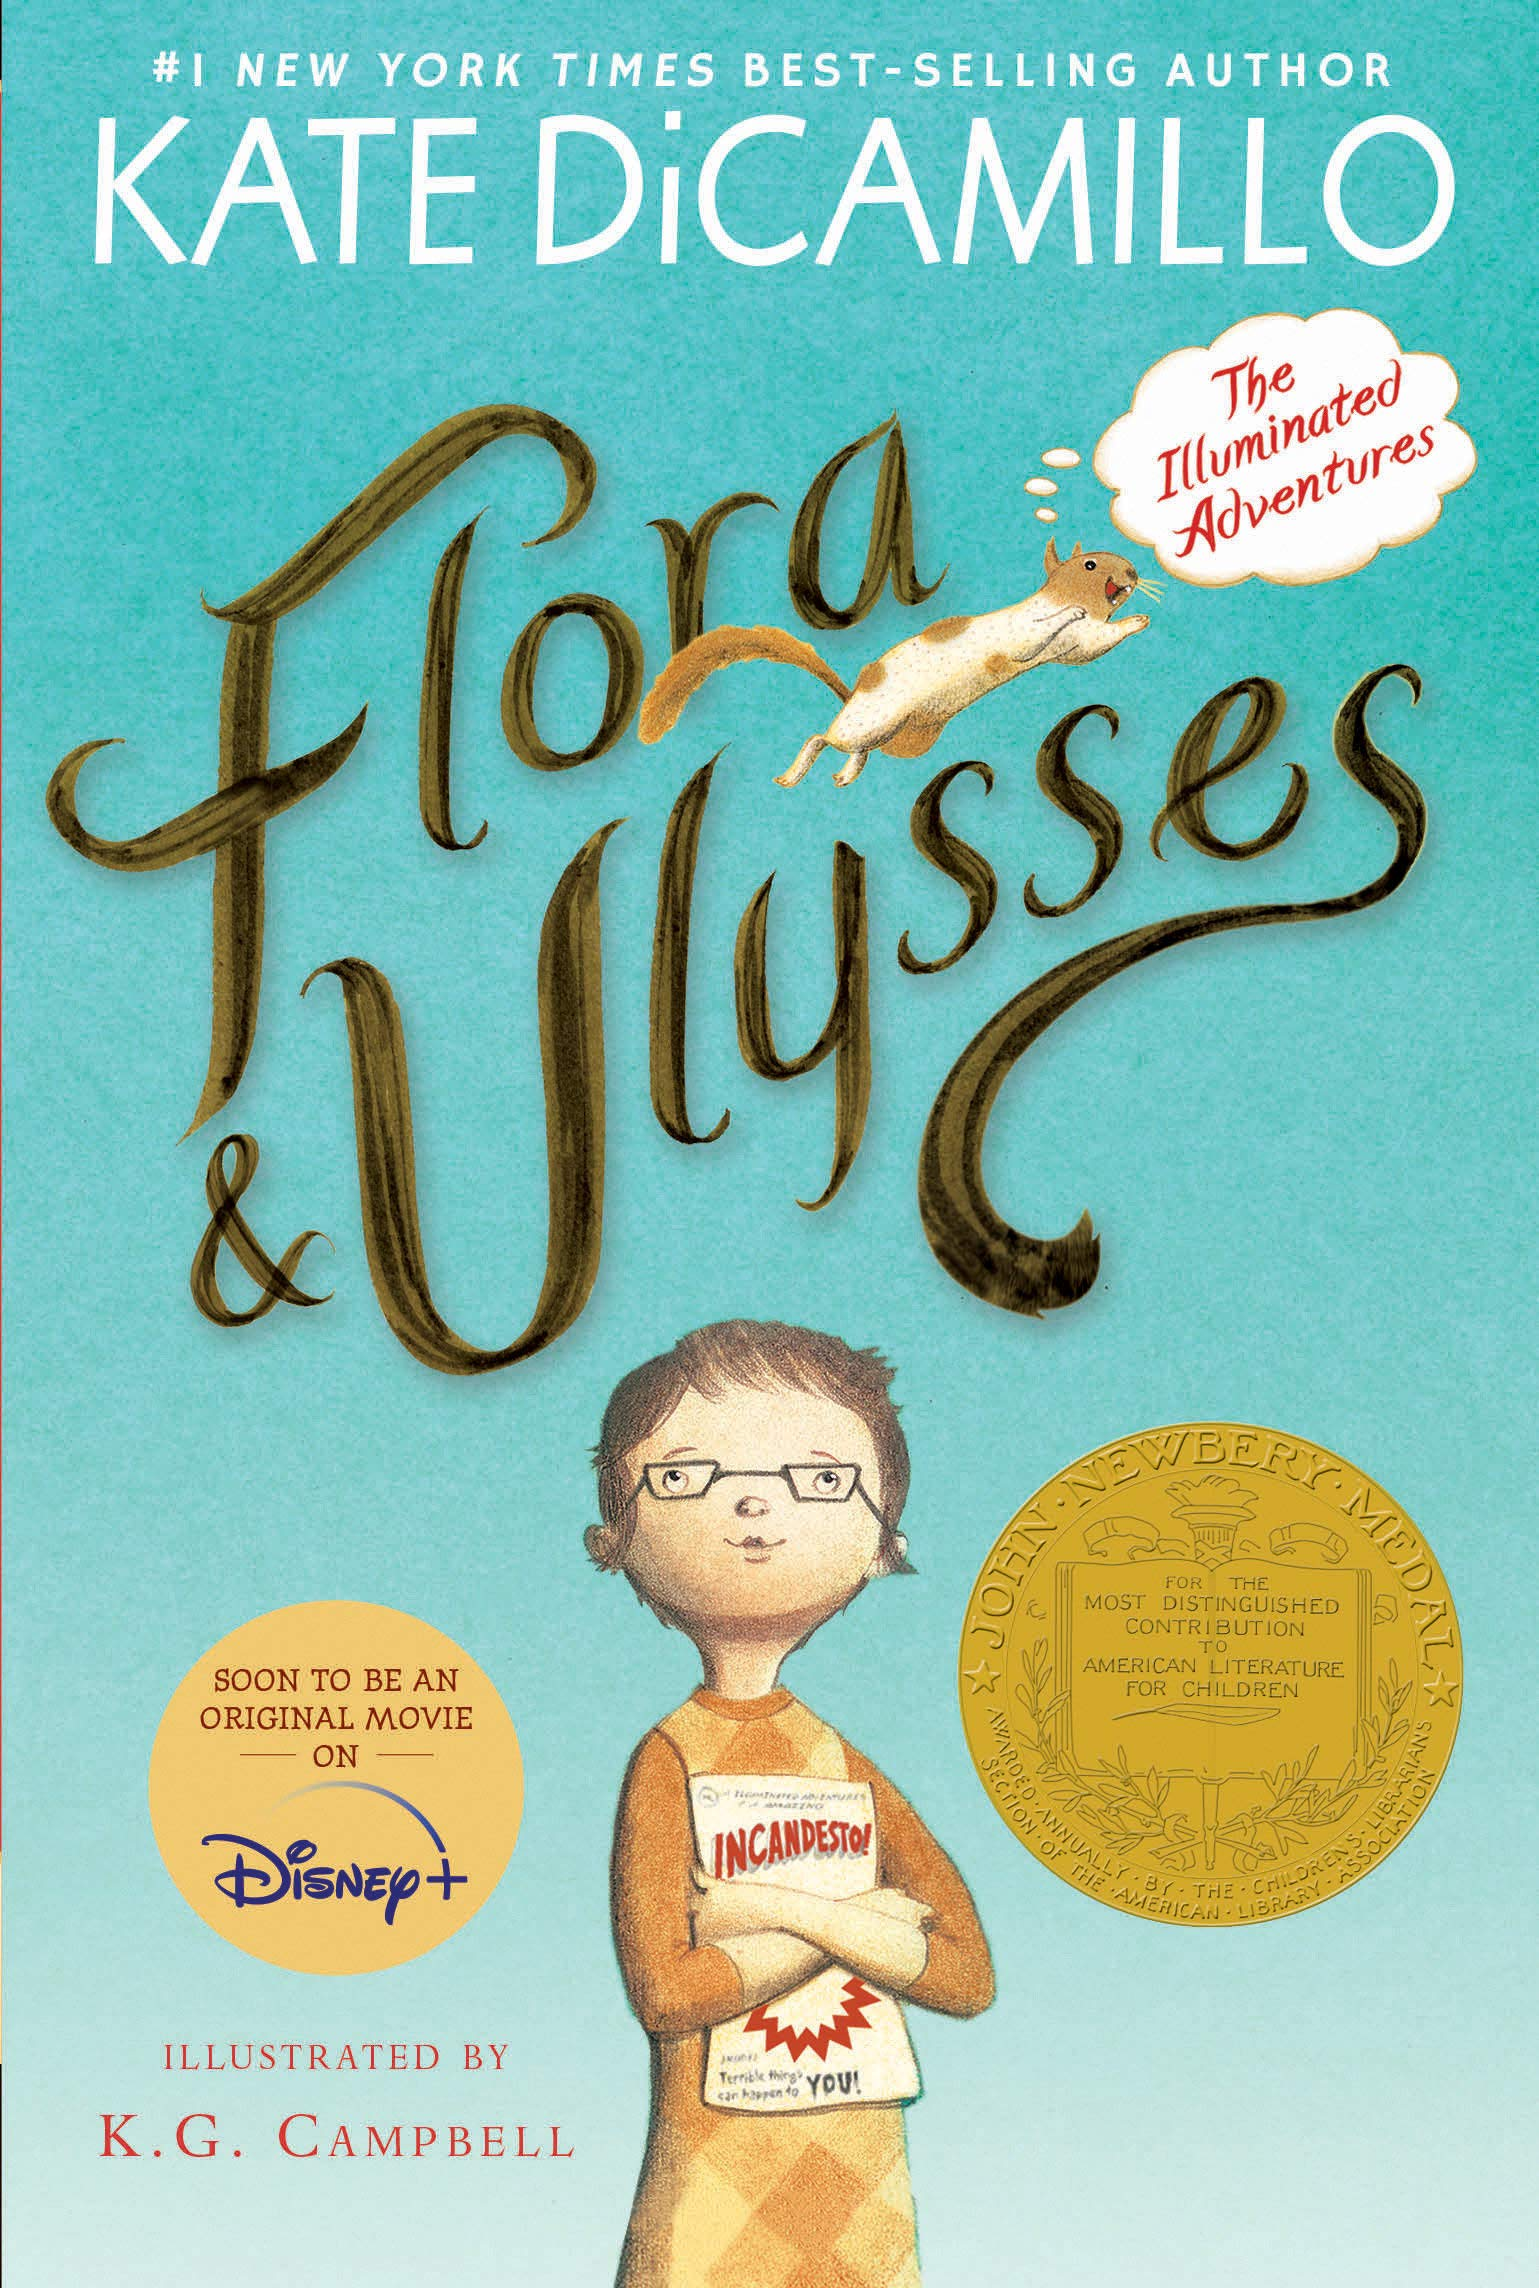 Flora and Ulysses: The Illuminated Adventures: DiCamillo, Kate, Campbell, K. G.: 9780763687649: Amazon.com: Books